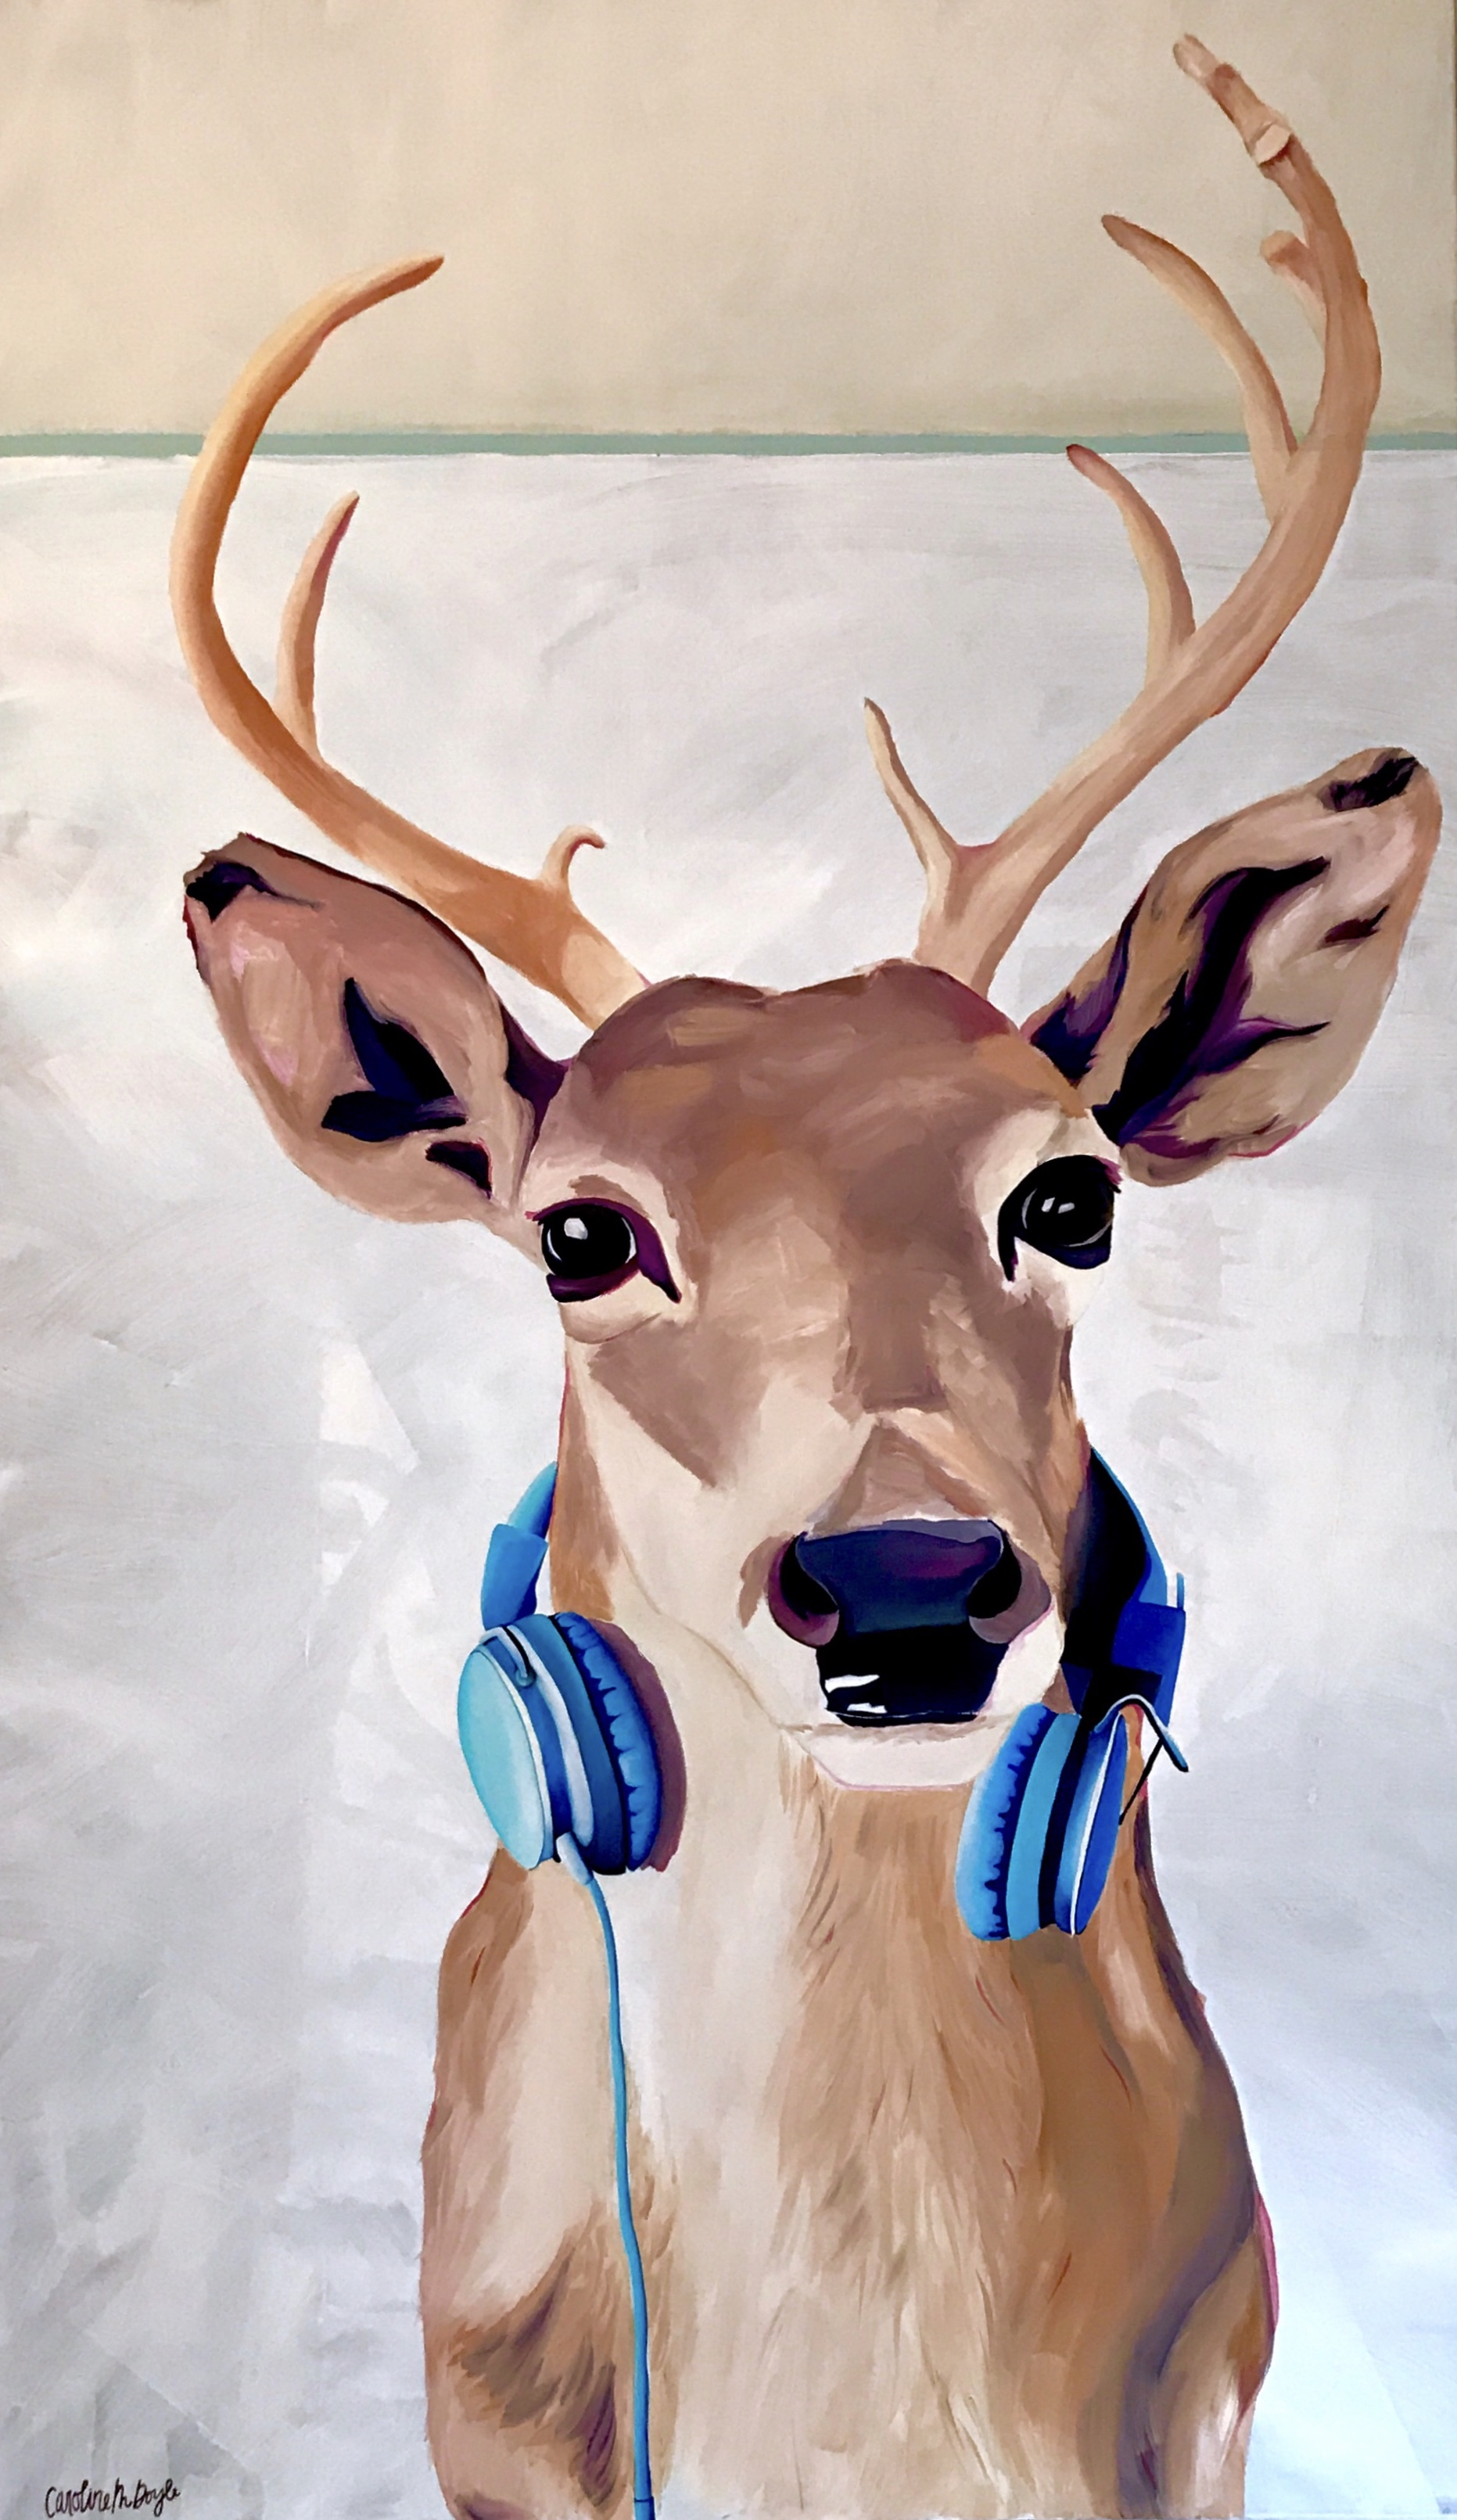 Beats by Deer